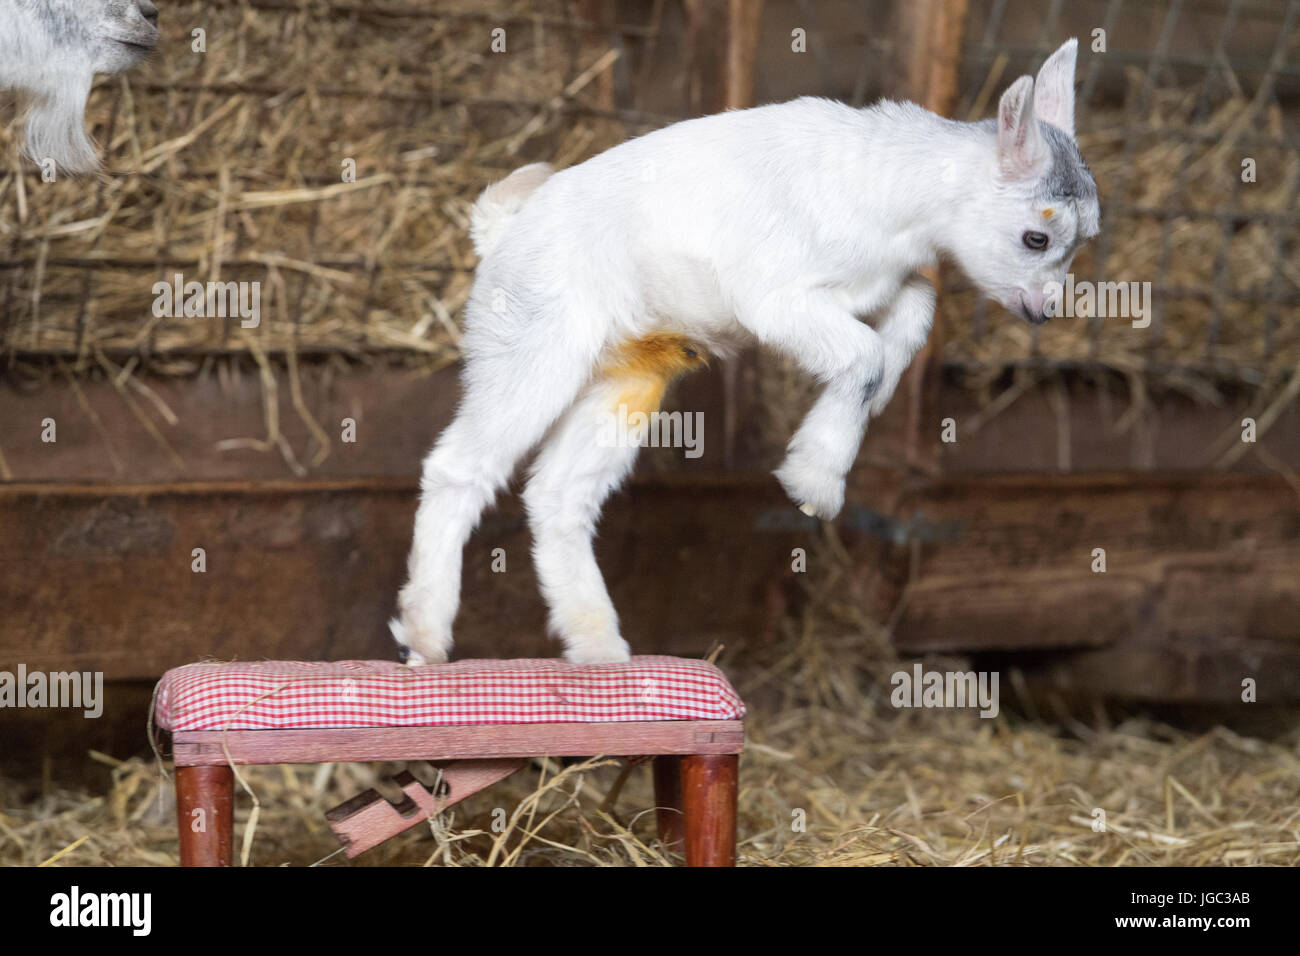 Nanny and kid pygmy goat in pen. - Stock Image